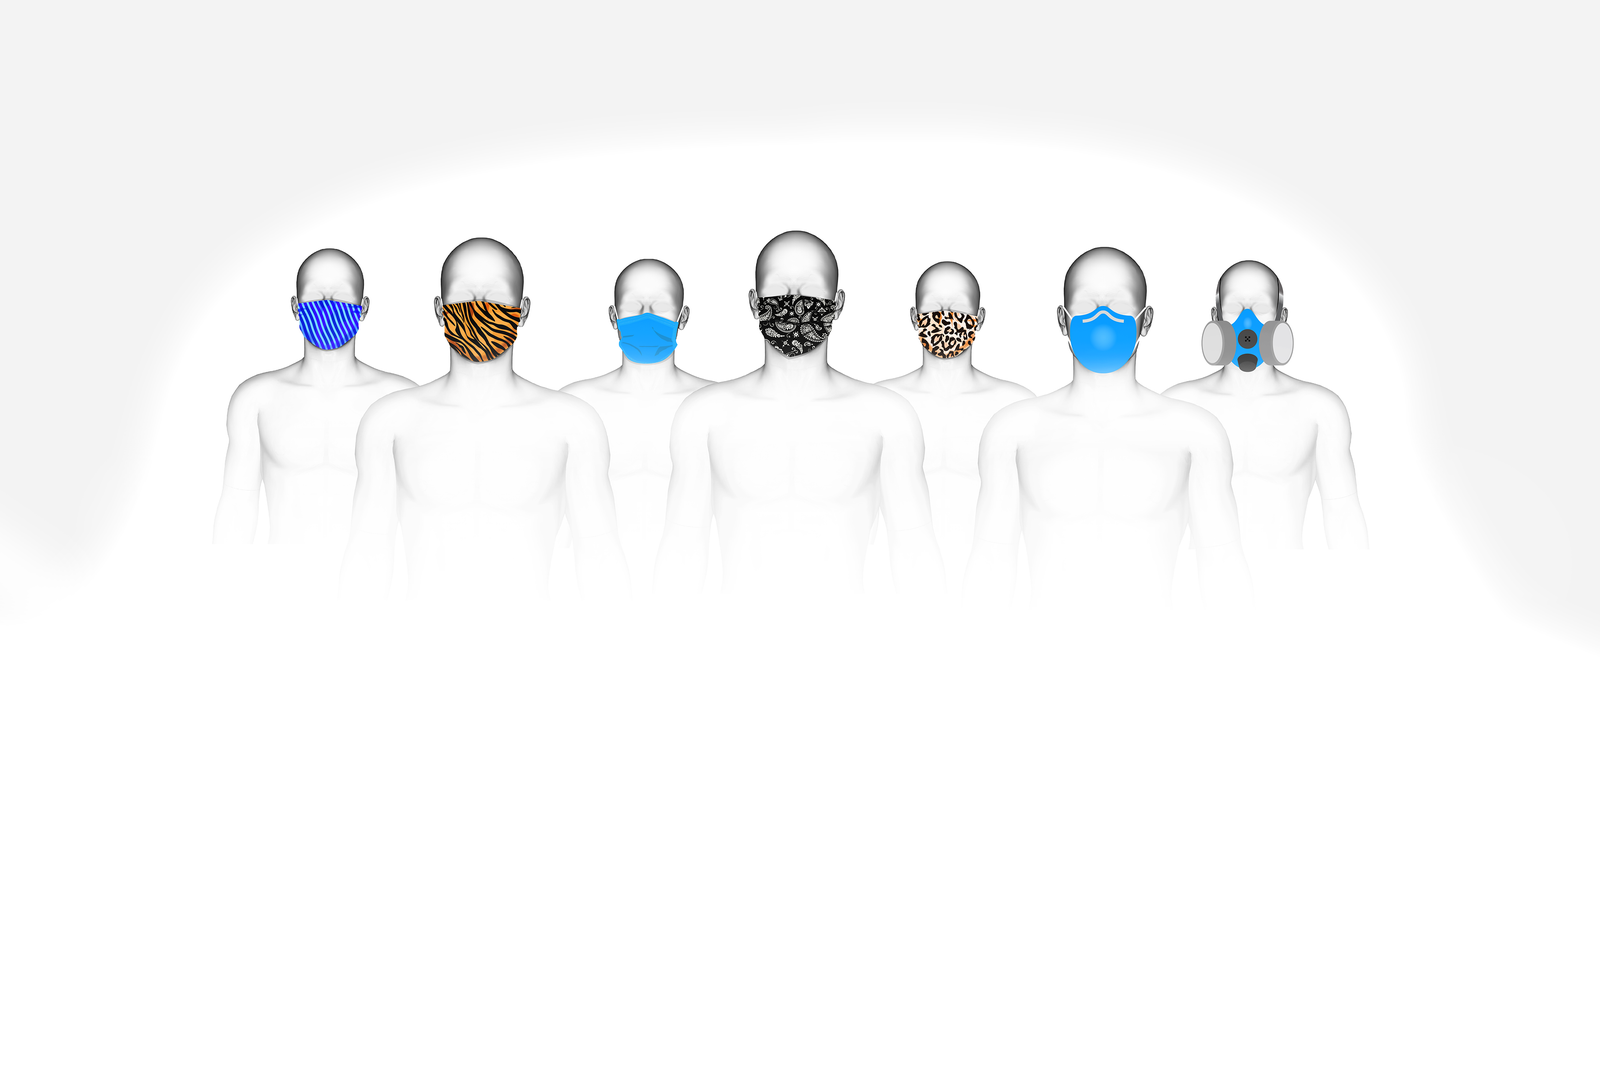 https://www.gannett-cdn.com/indepth-static-assets/uploads/master/5148025002/b11d42e4-f777-48af-aad7-456d45712344-mask-topper.png